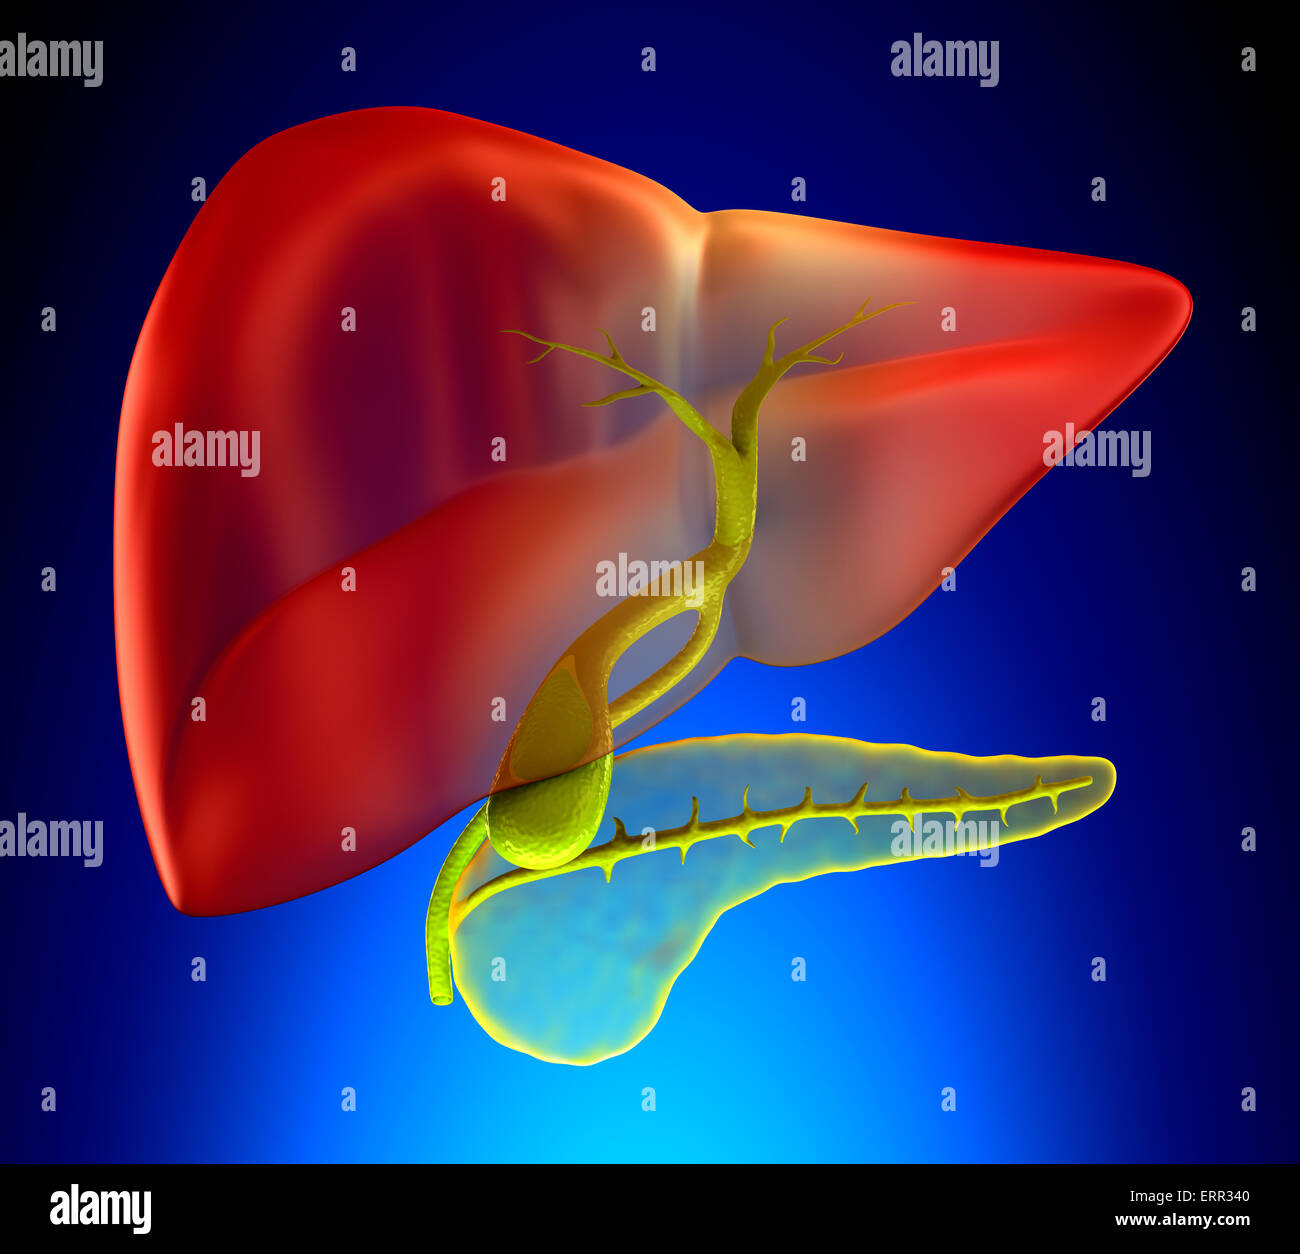 Gallbladder Cross Section Real Human Anatomy - on blue background - Stock Image